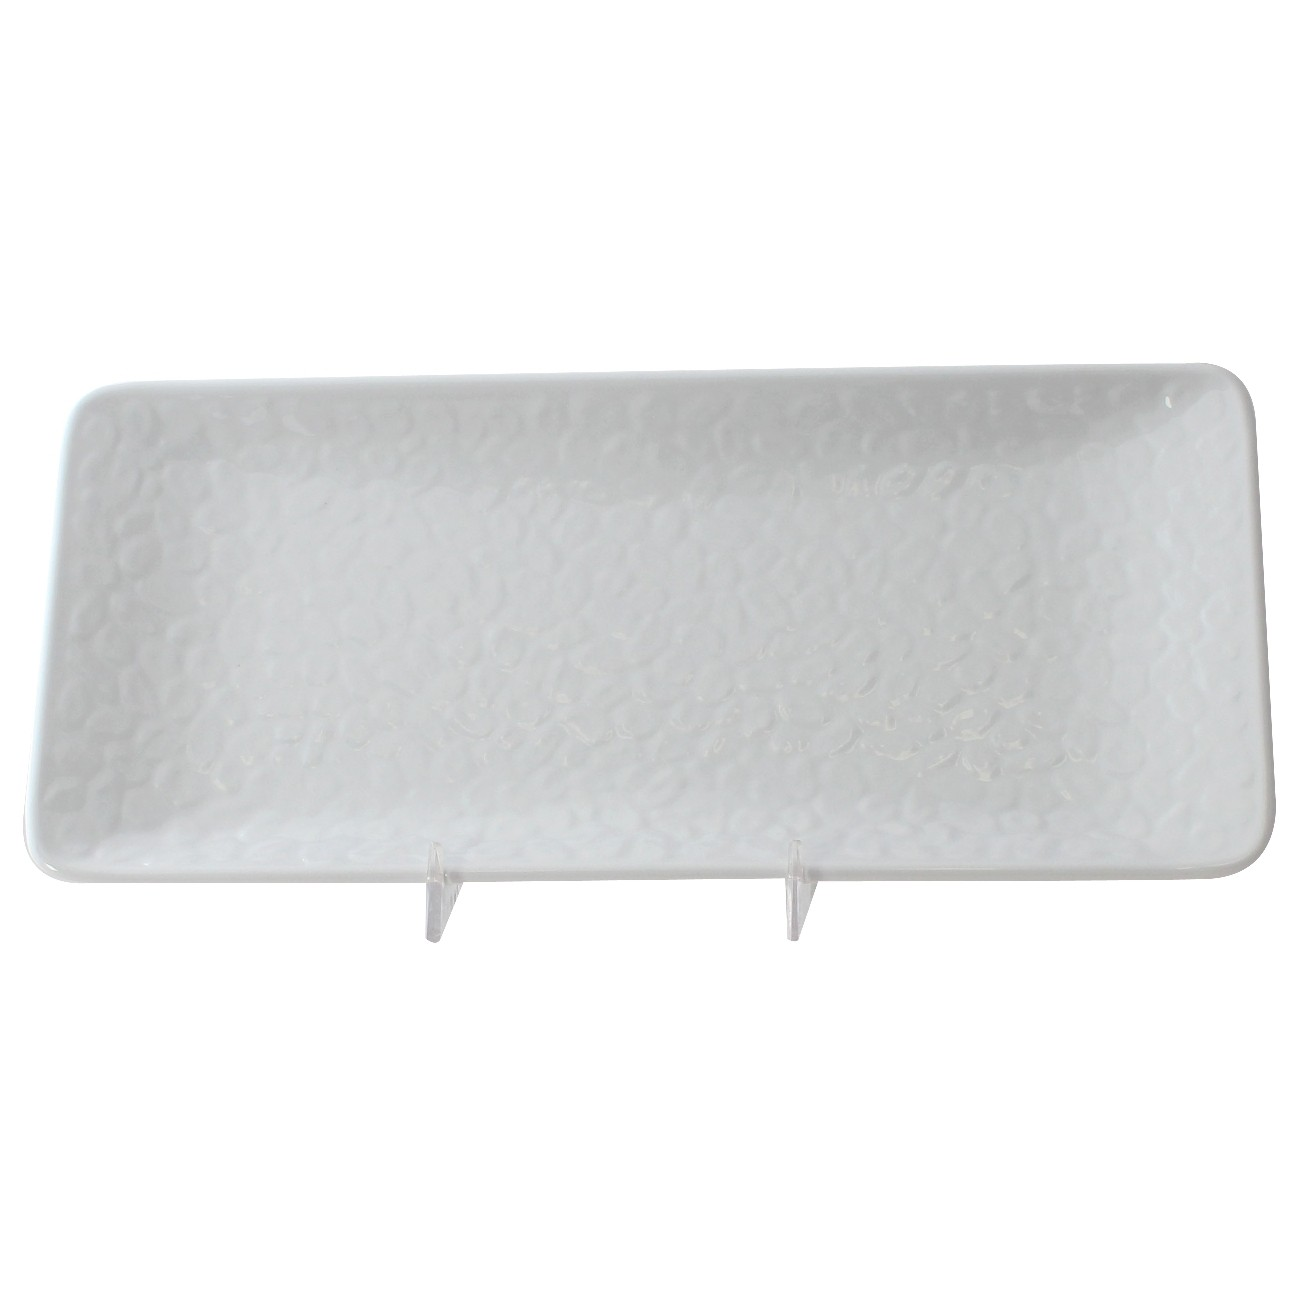 "Thunder Group 24110WT Classic White Rectangular Melamine Plate 11-1/4"" x 5"""